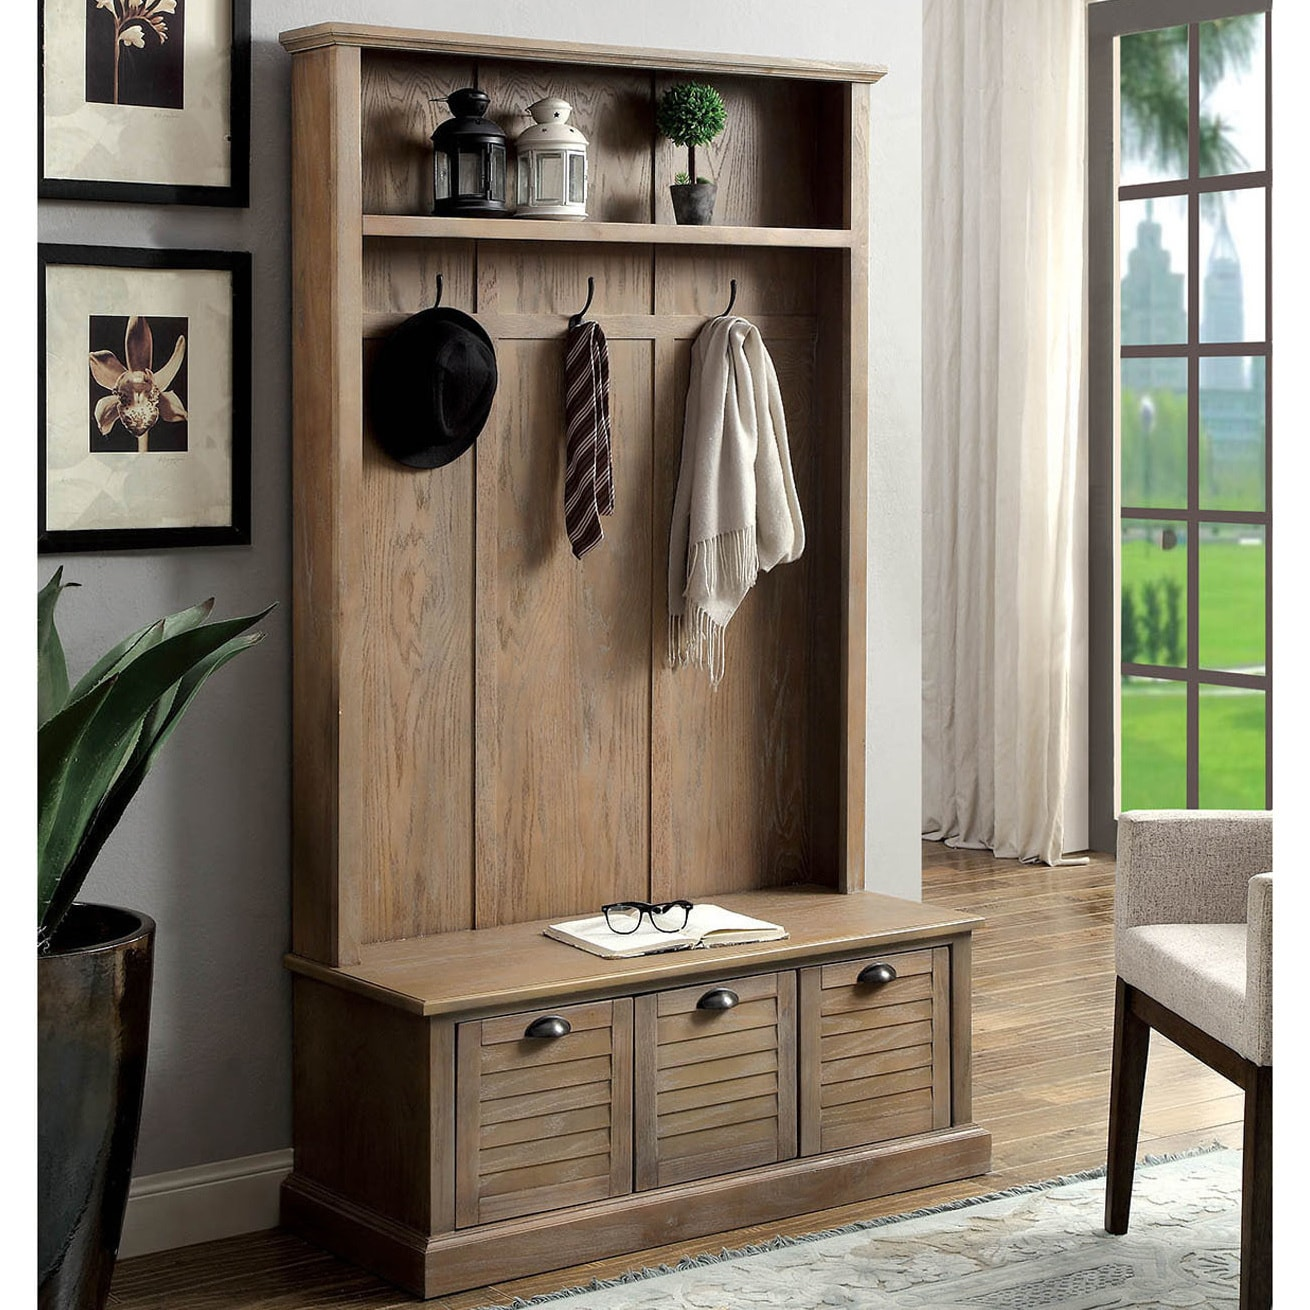 Furniture Of America Miba Rustic Grey Hall Tree With Storage Bench On Sale Overstock 20272735